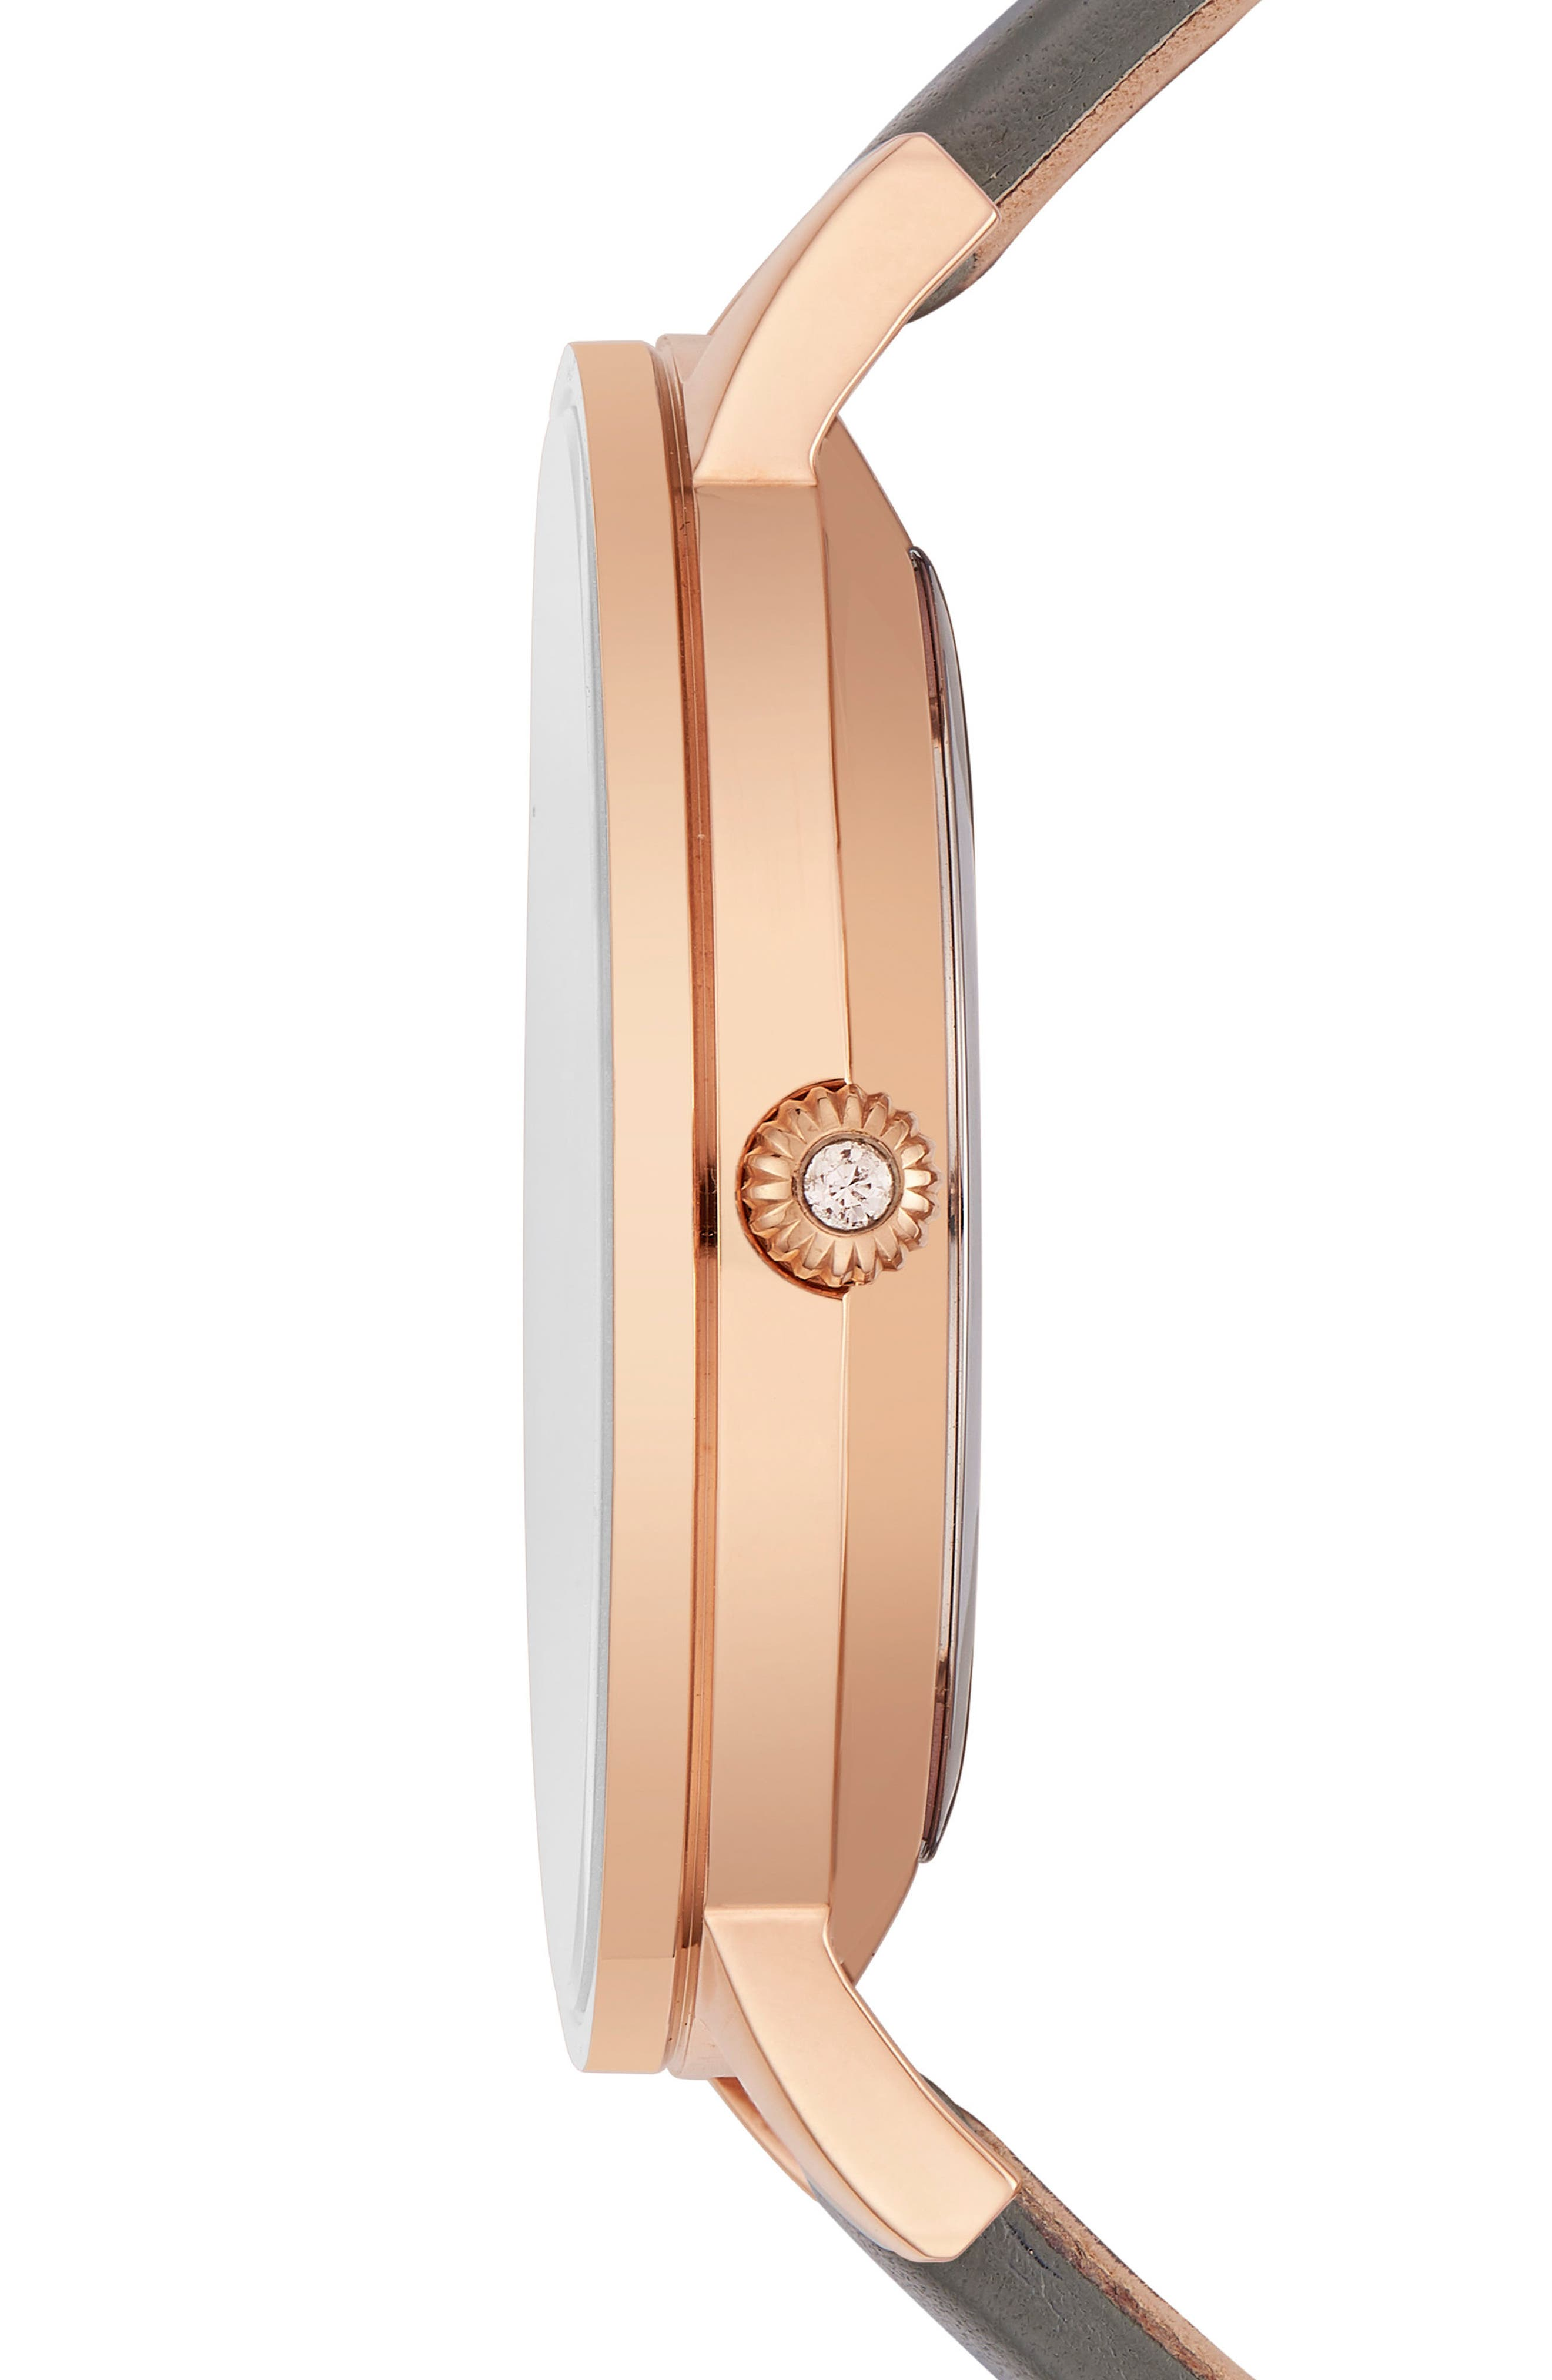 TED BAKER LONDON, Kate Leather Strap Watch, 40mm, Alternate thumbnail 3, color, 020